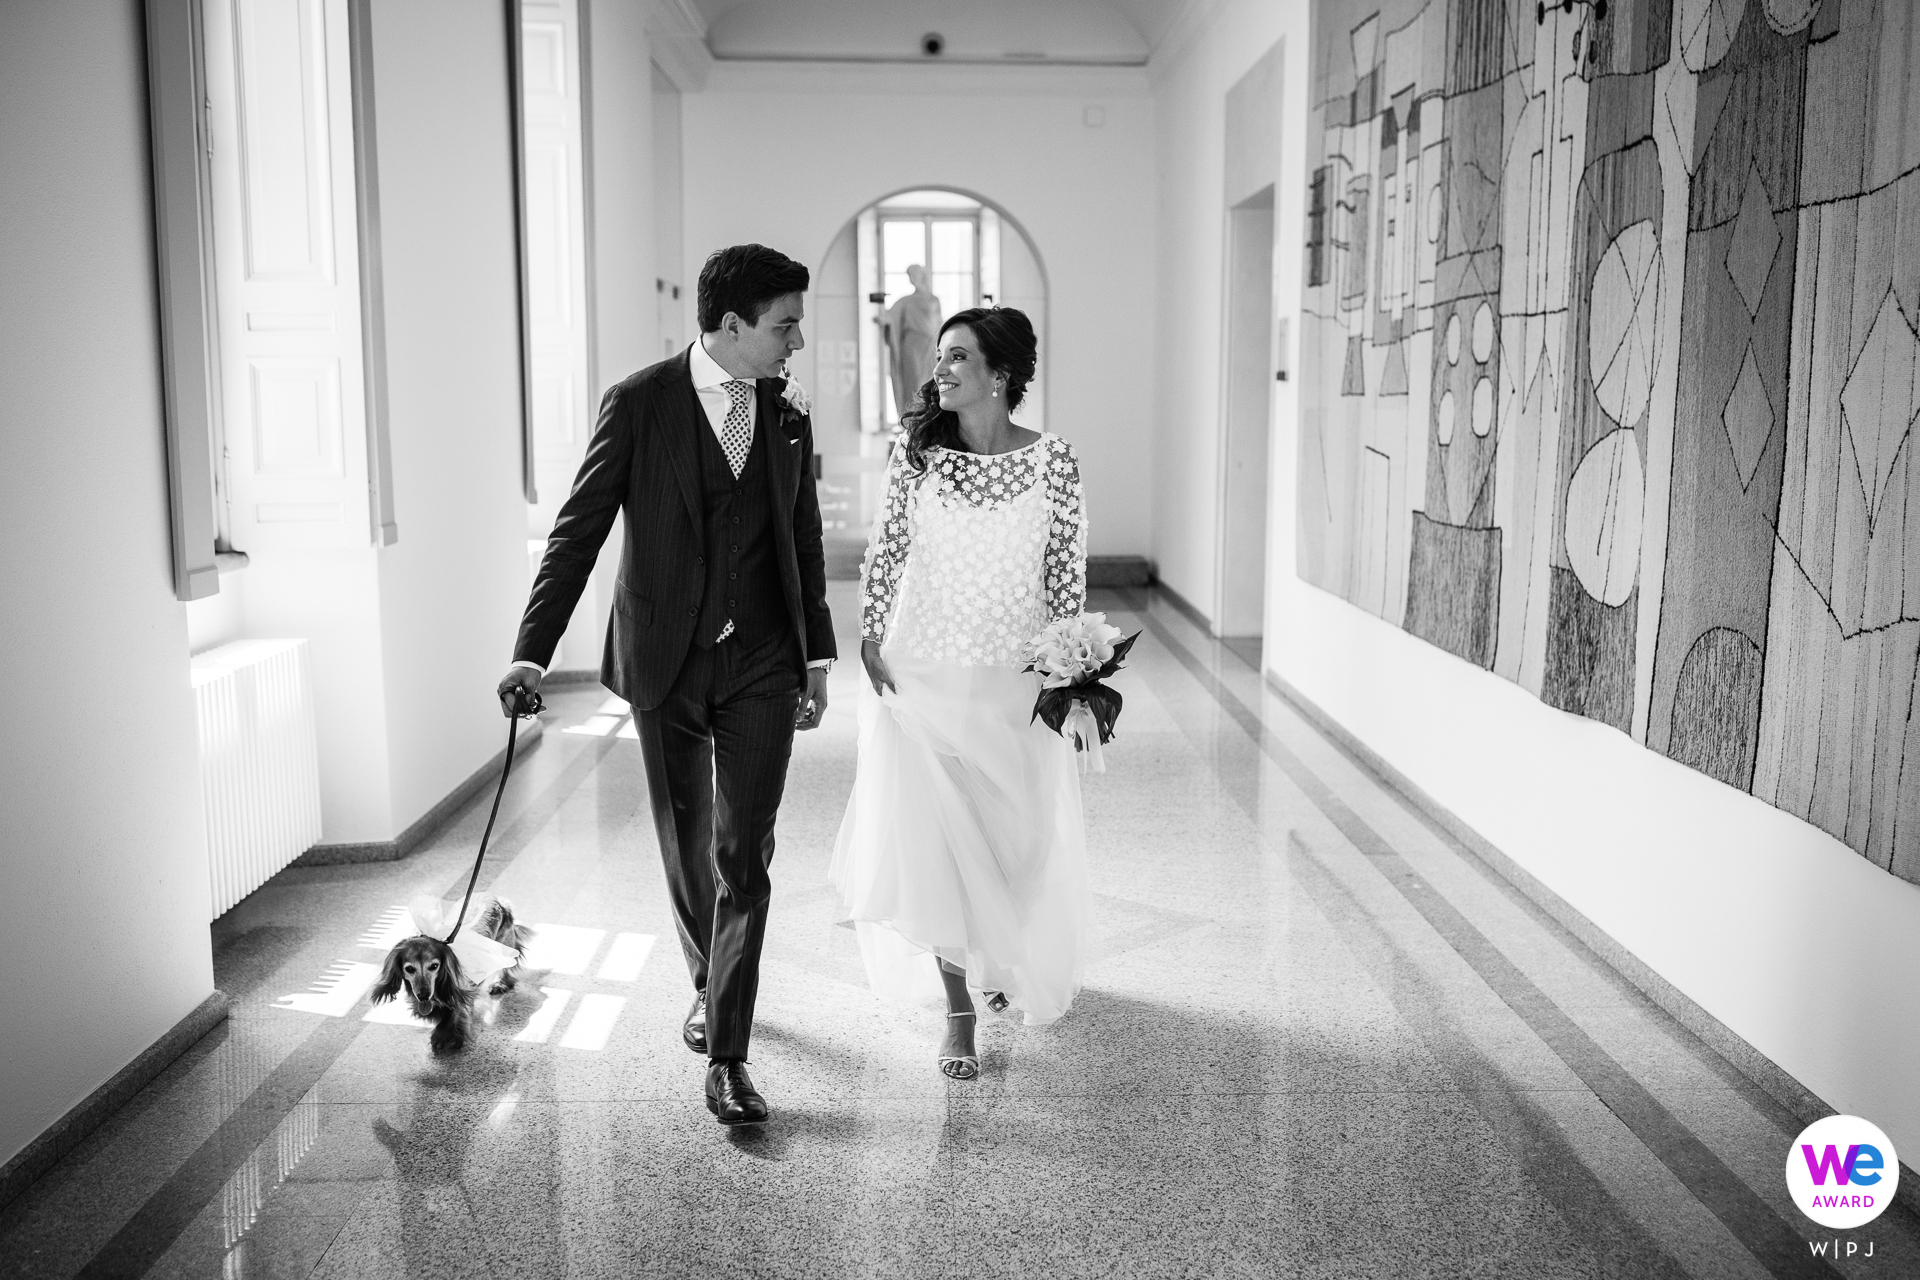 Lugano Town Hall, Switzerland Elopement Photo Story | The bride and groom make their way to the hall where the ceremony will be held with their dog walking ahead of them eagerly across the shining tile floor